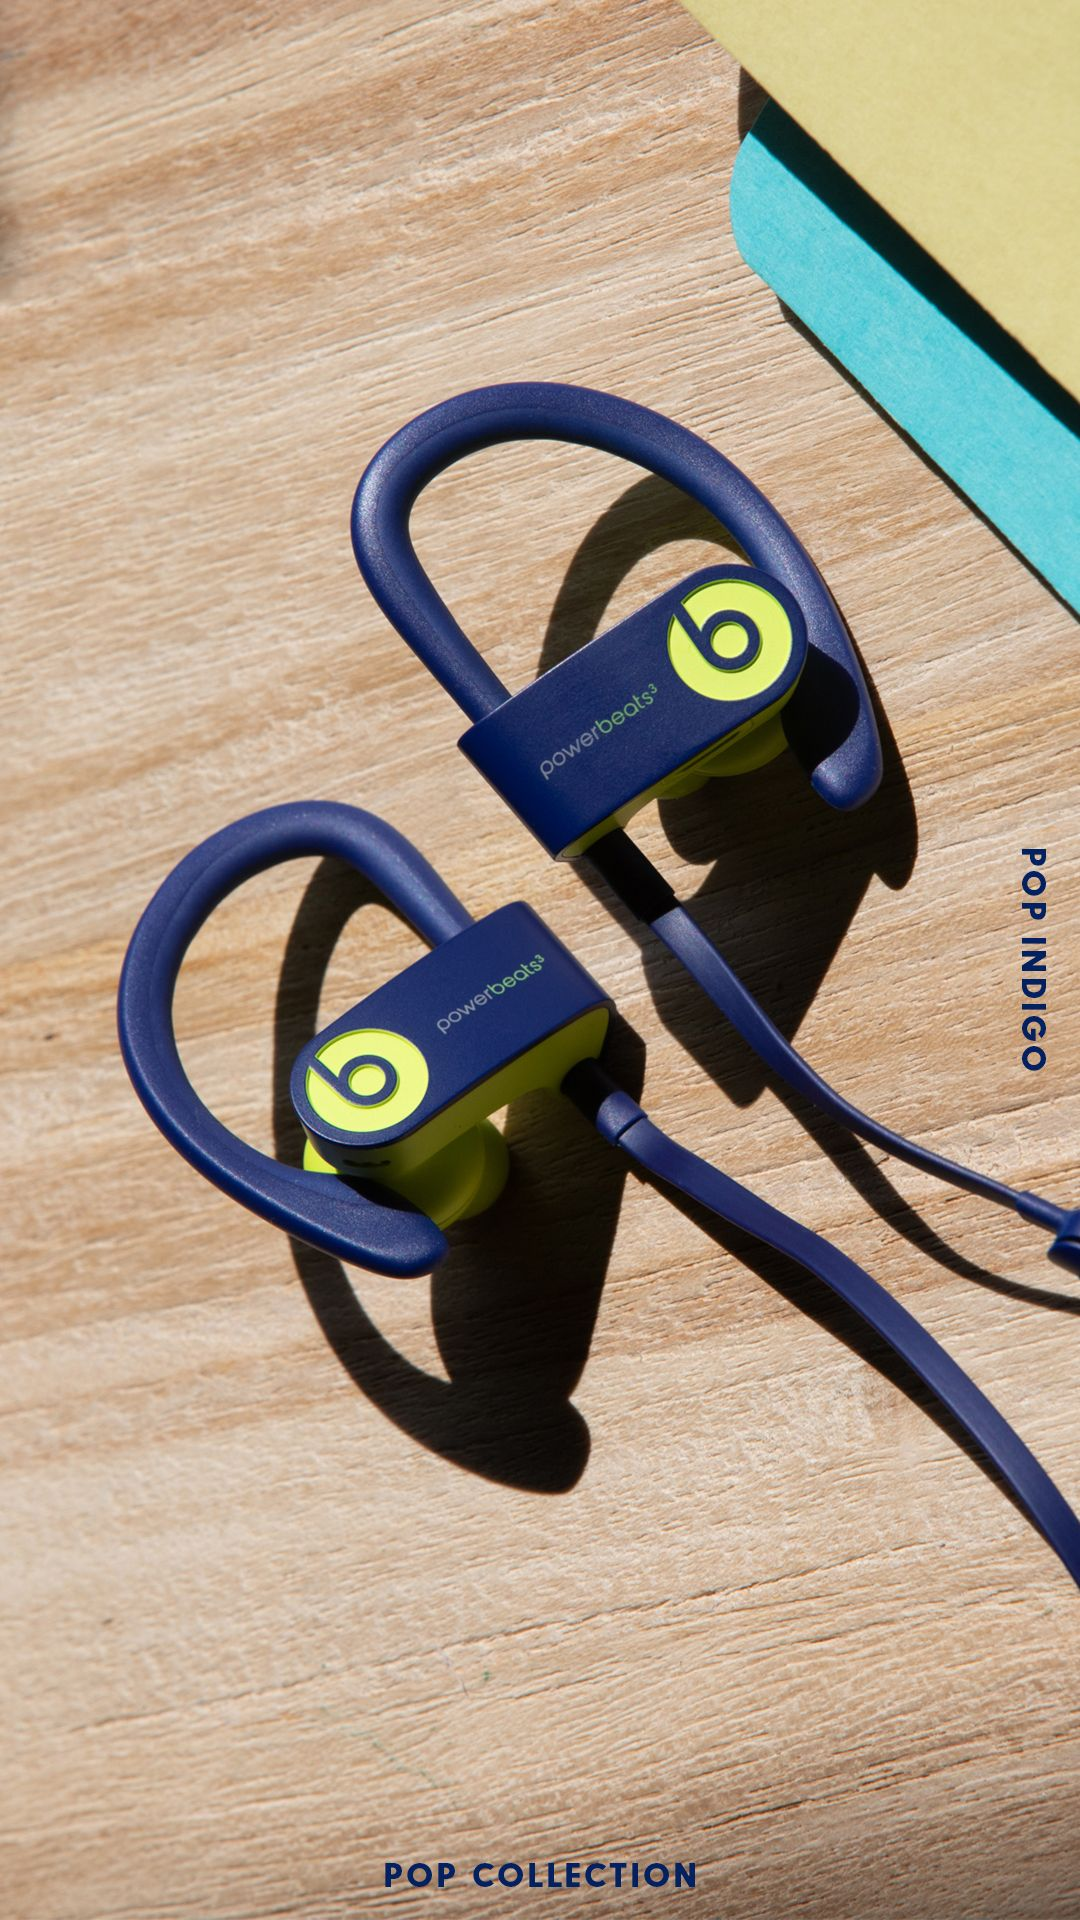 Refuse To Blend In Shop The Beats Pop Collection Upgrade Your Style This Summer With Bright And Colorful Beats Solo3 Wir Pop Collection Pop Blue Beats Studio